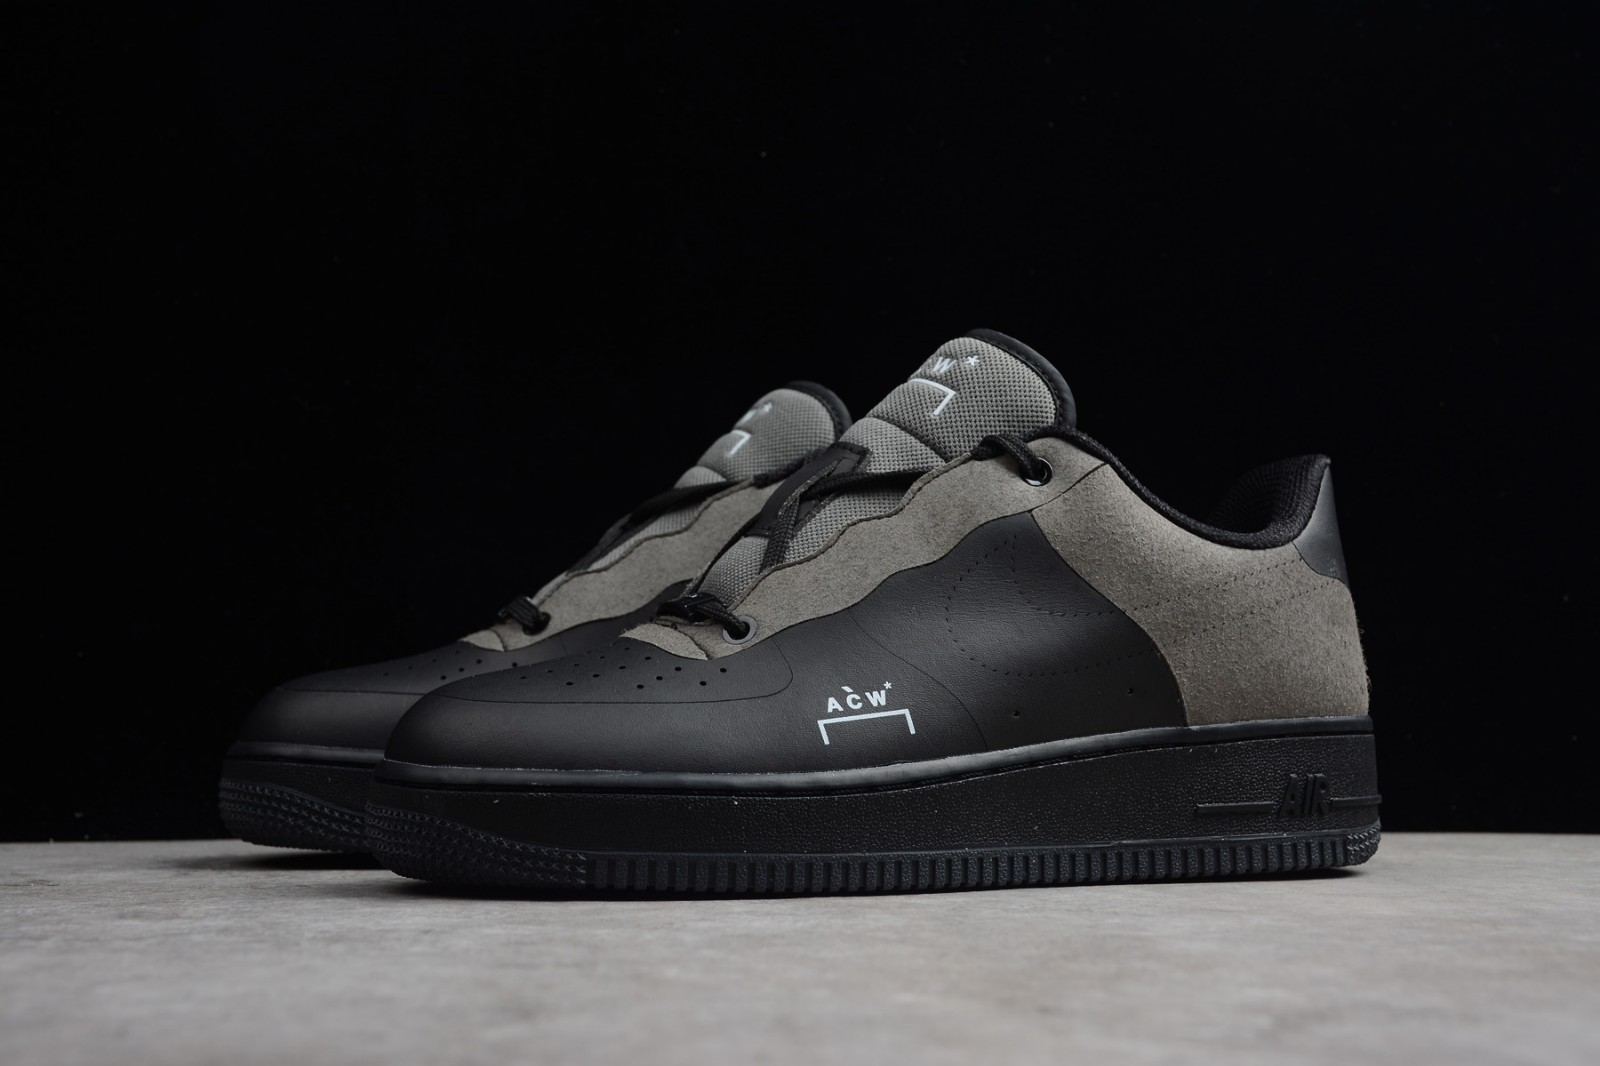 Nike Air Force 1 Low A Cold Wall Black White Dark Grey BQ6924 001